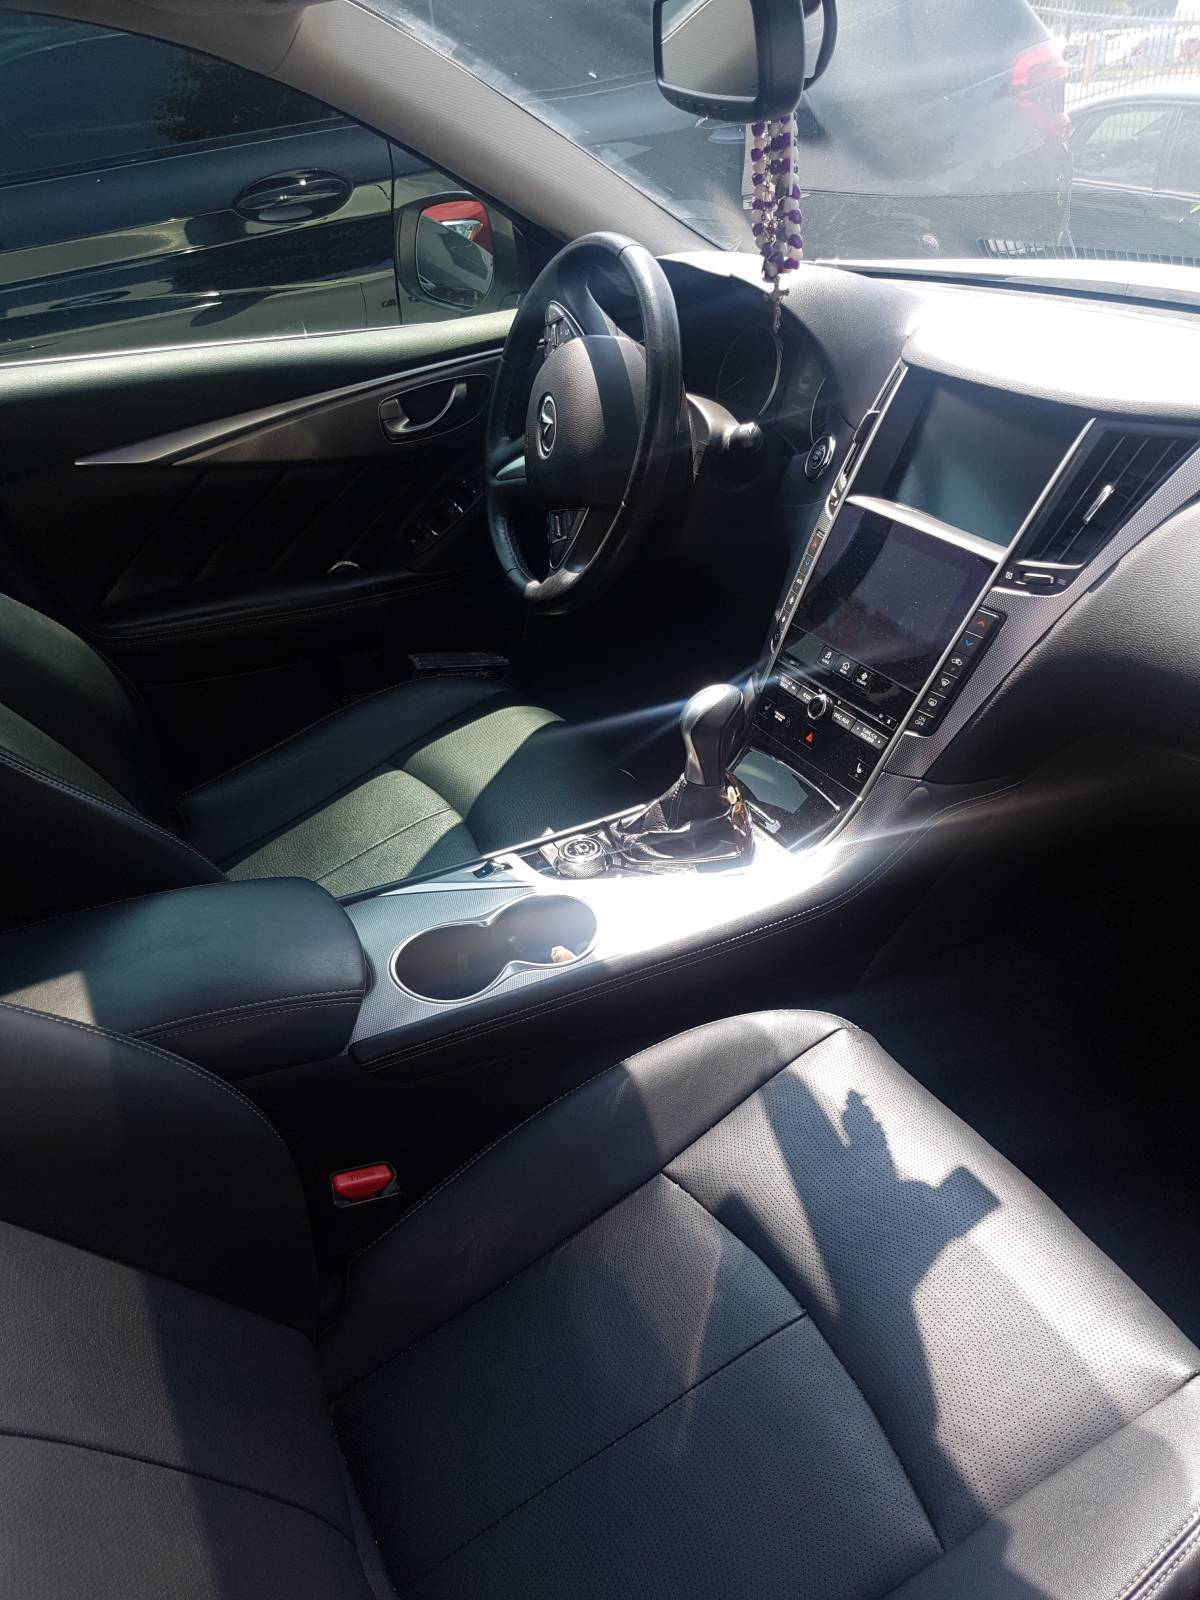 Lease Takeover In Bolton On 2015 Infiniti Q50 Automatic